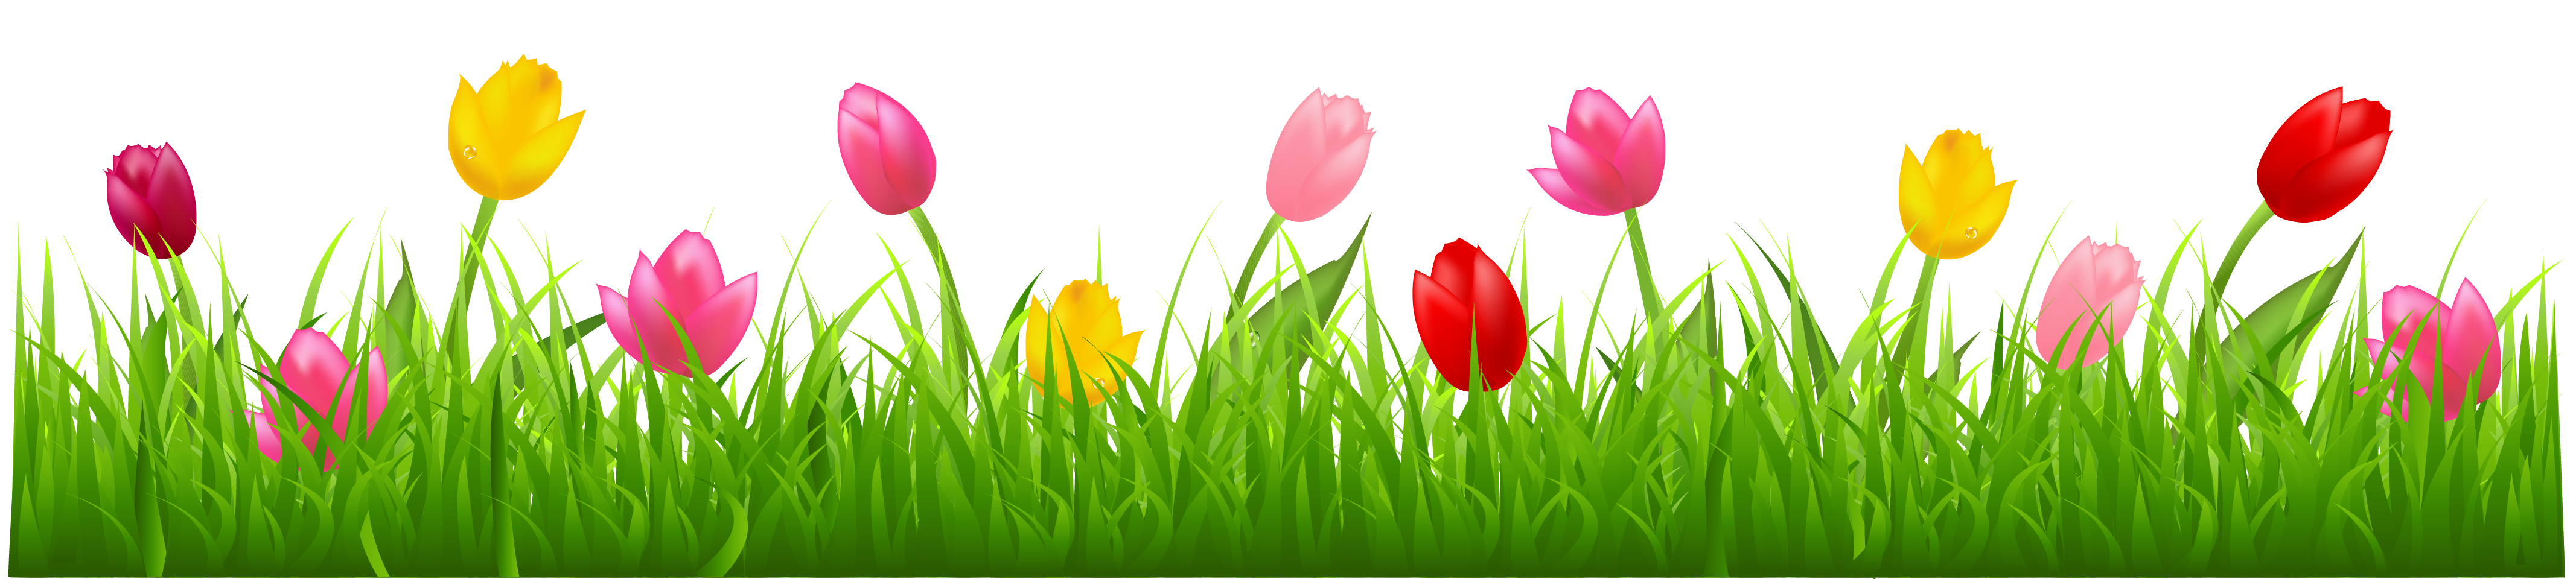 Grass With Colorful Tulips PNG Clipart |-Grass with Colorful Tulips PNG Clipart | Spring Borders | Pinterest | Grasses and Tulip-1